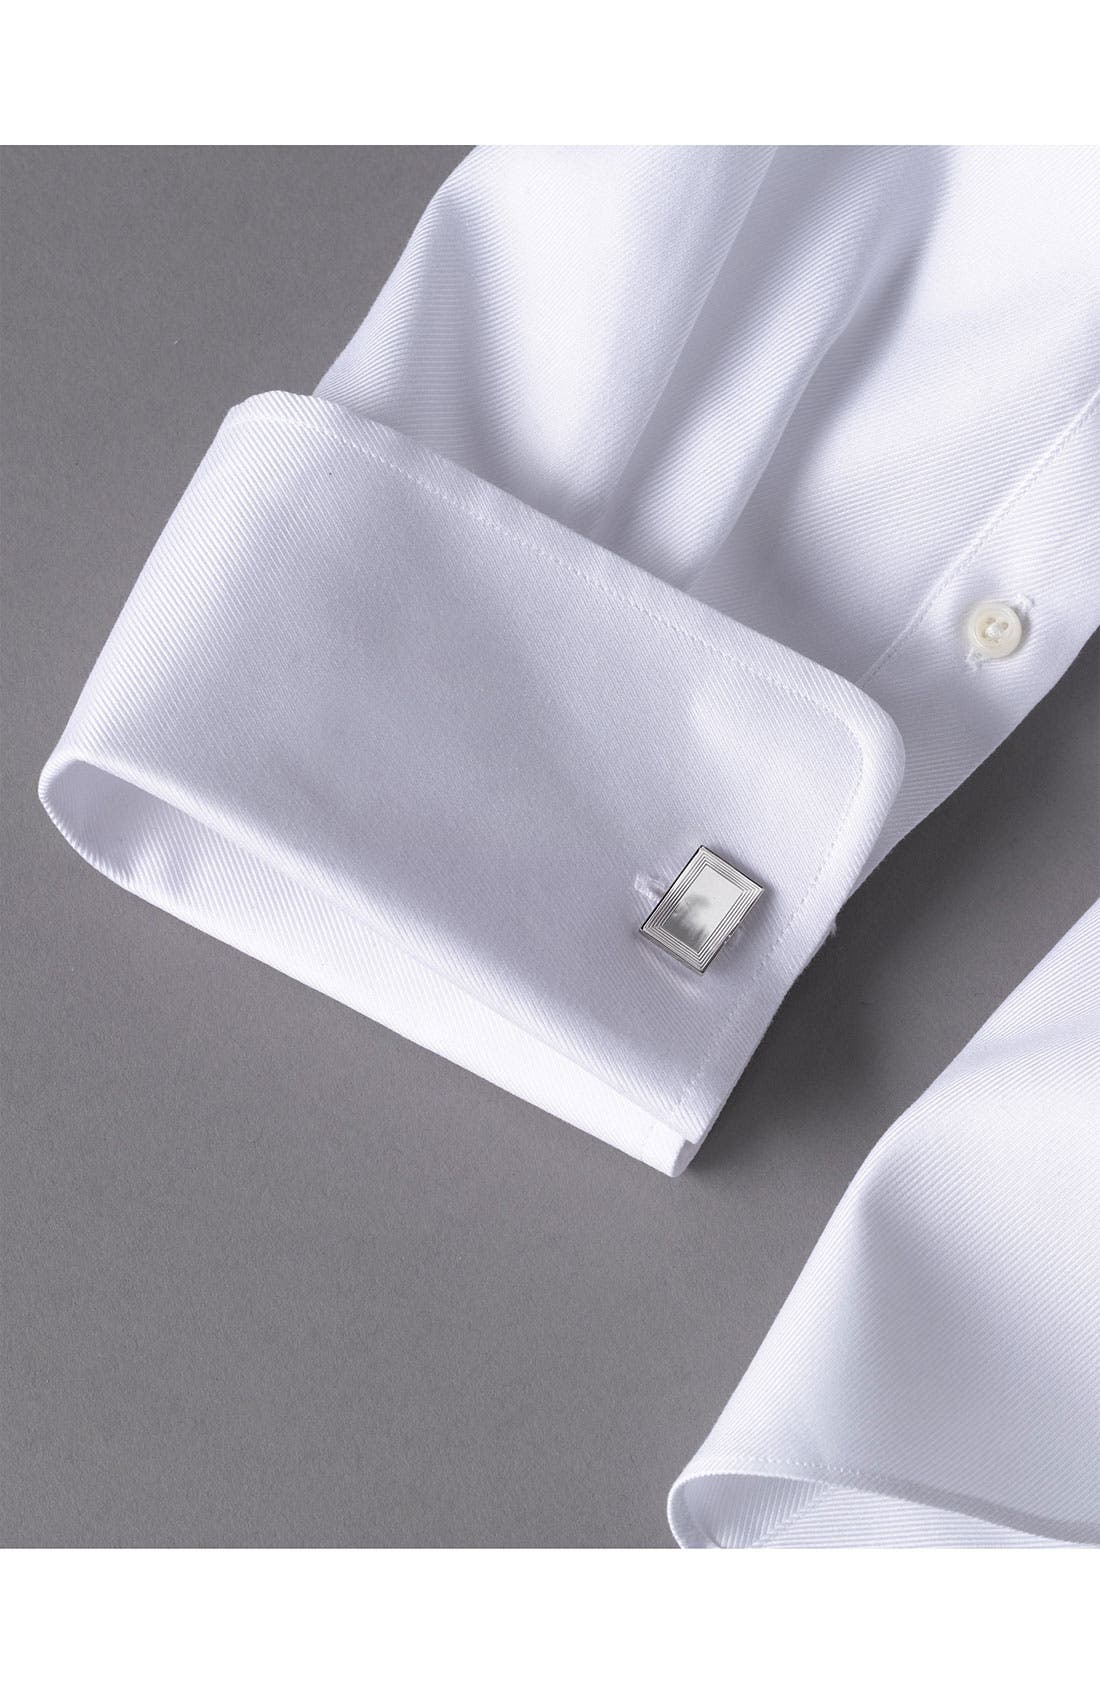 Alternate Image 2  - David Donahue Cuff Links